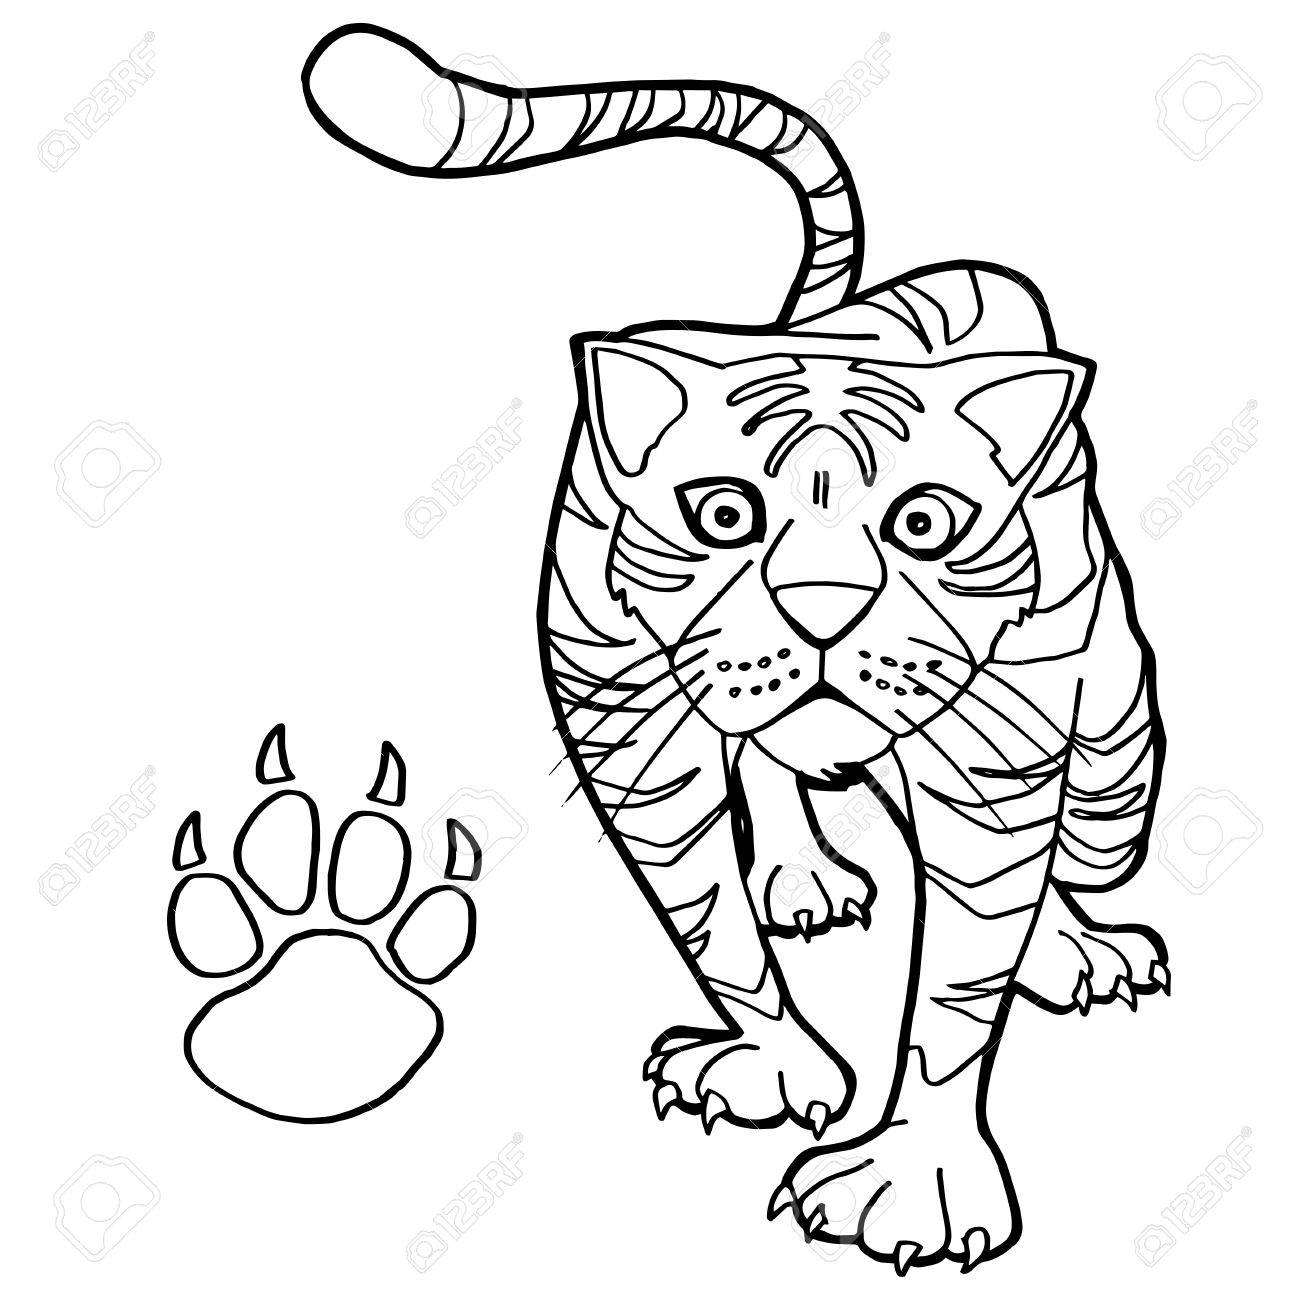 Tiger With Paw Print Coloring Page Vector Royalty Free Cliparts ...